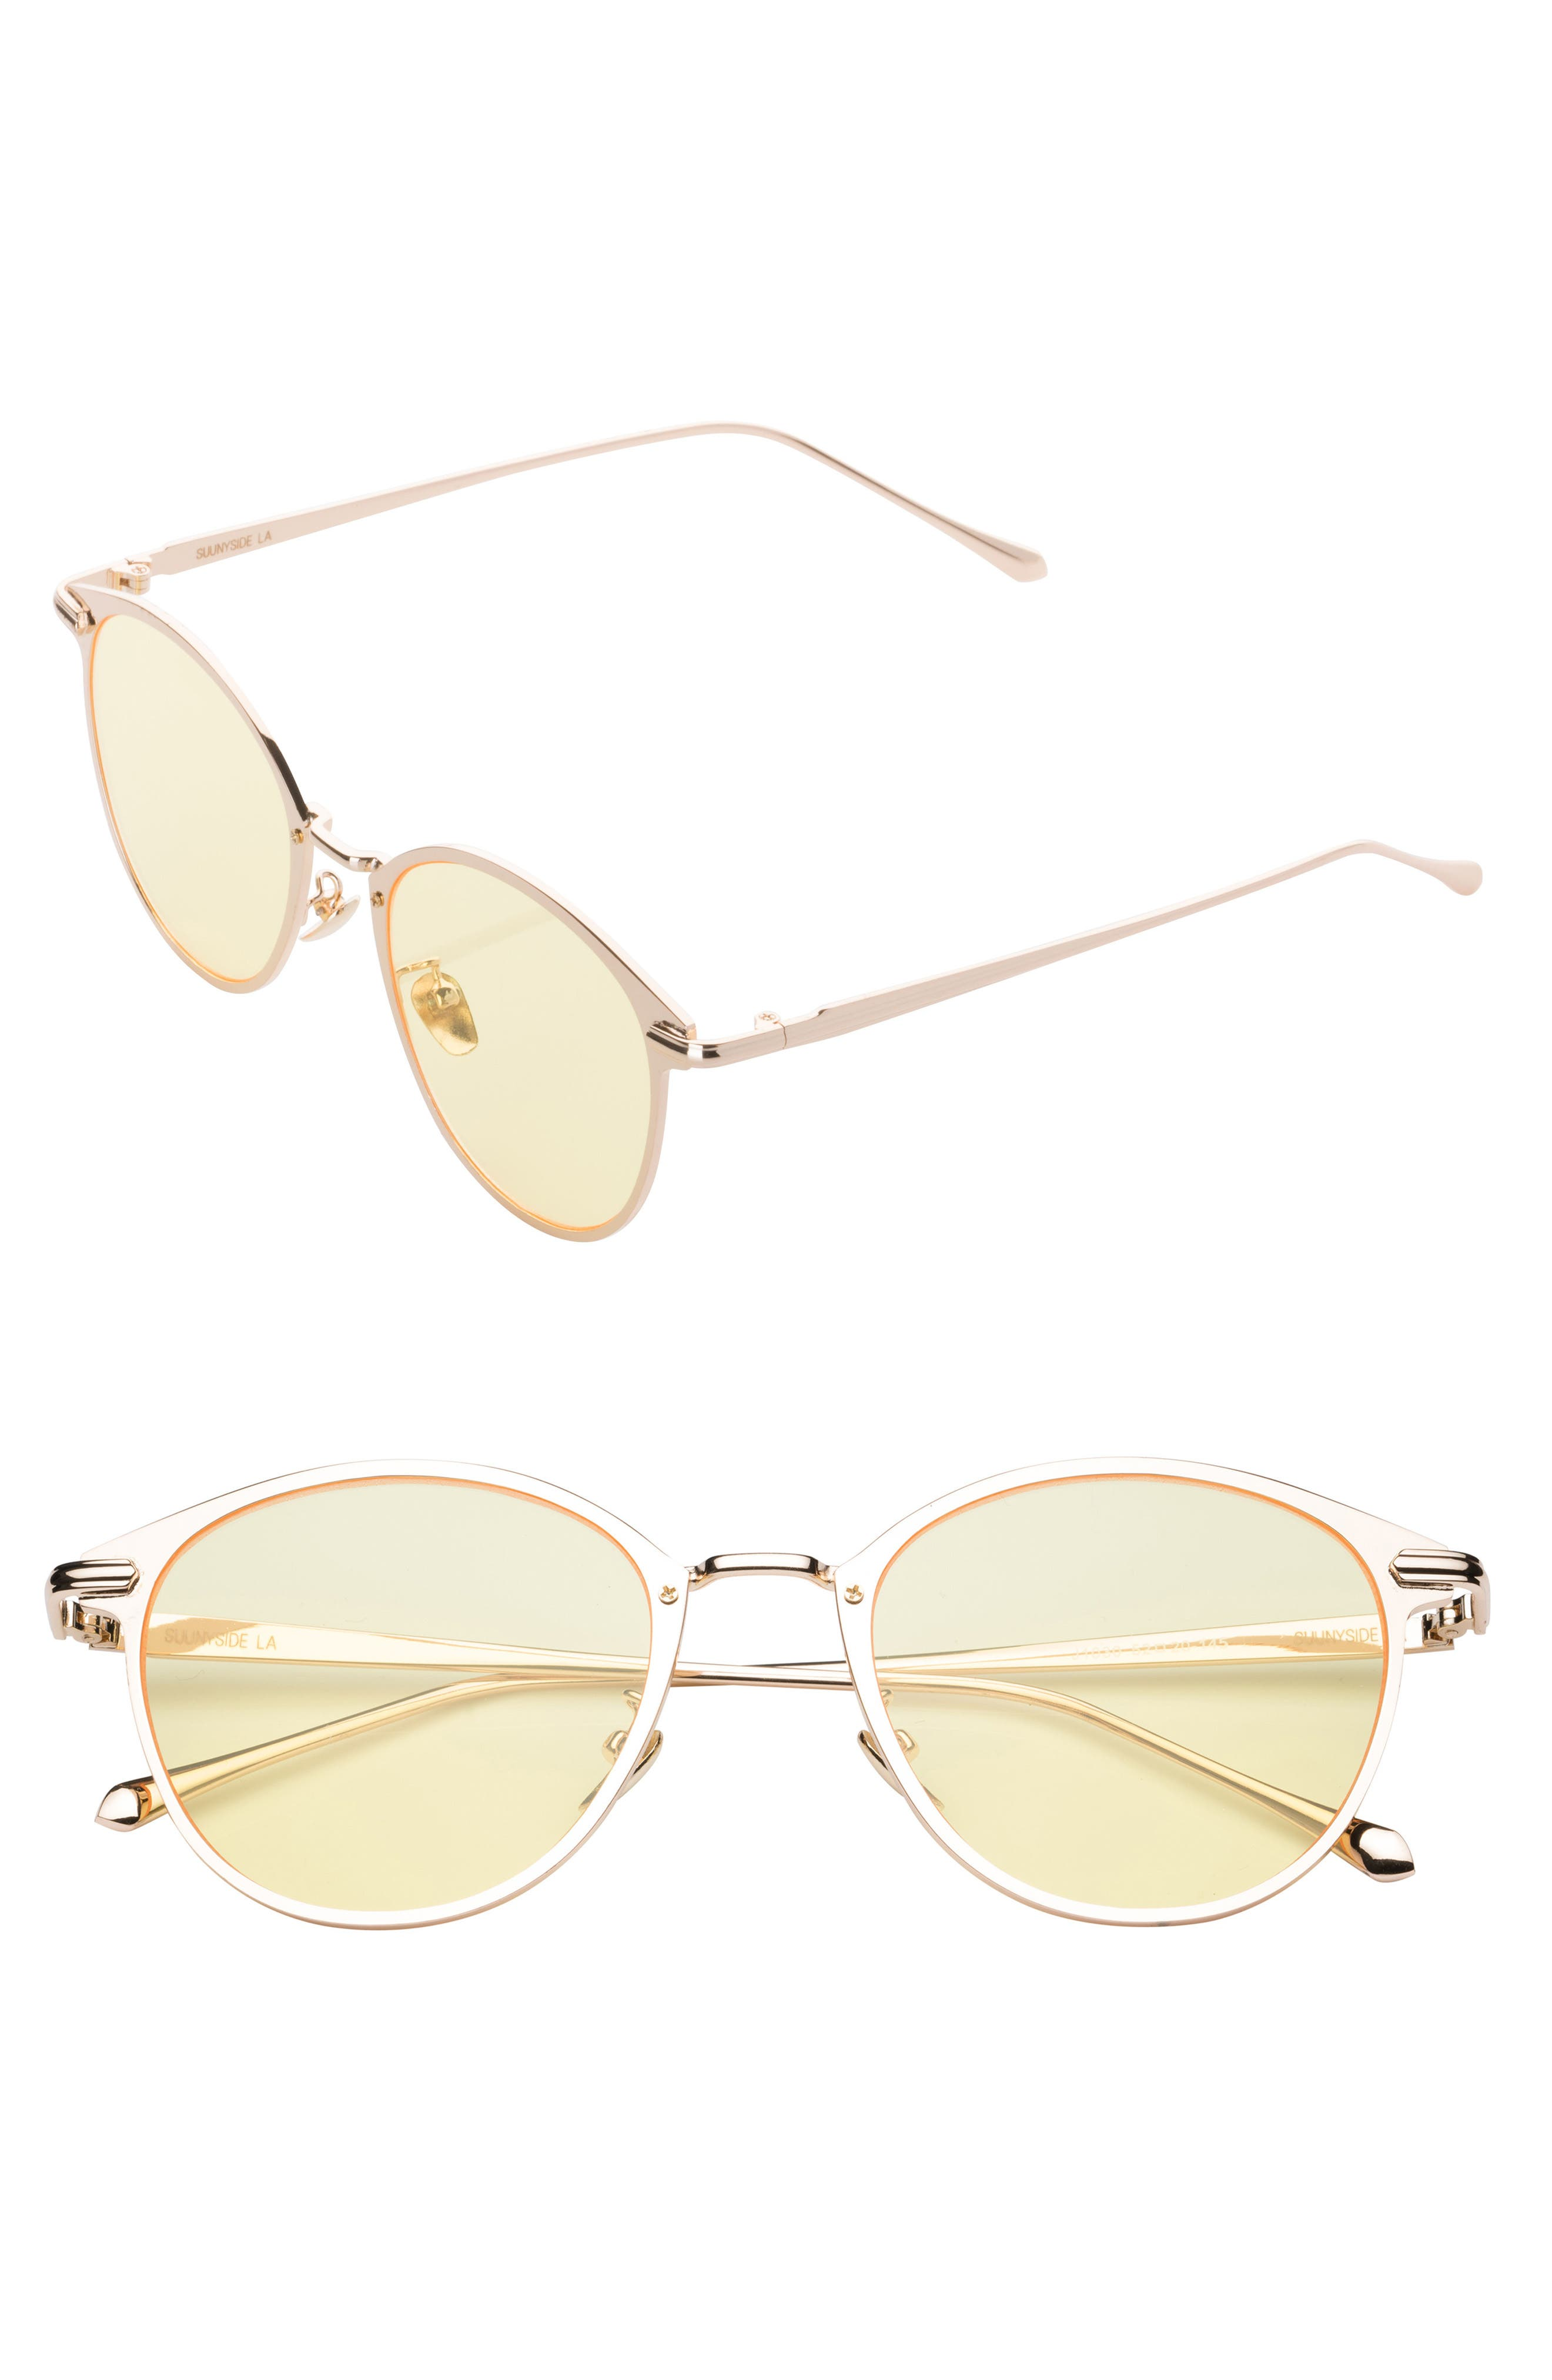 51mm Oxford Sunglasses,                         Main,                         color, Yellow/ Gold